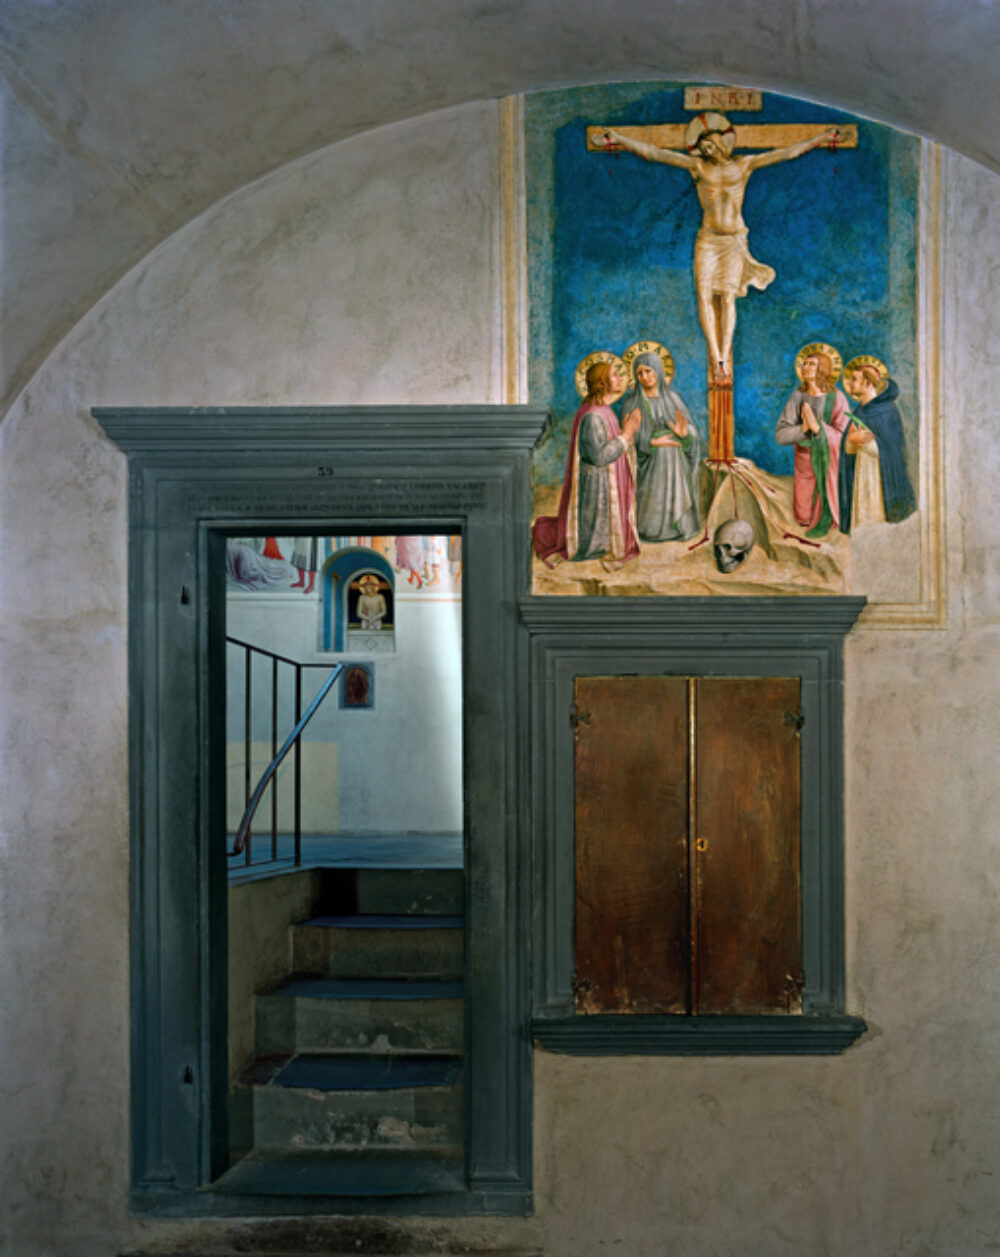 Crucifixion with the Virgin and Saints Cosmas, John the Evangelist and Peter Martyr by Fra Angelico